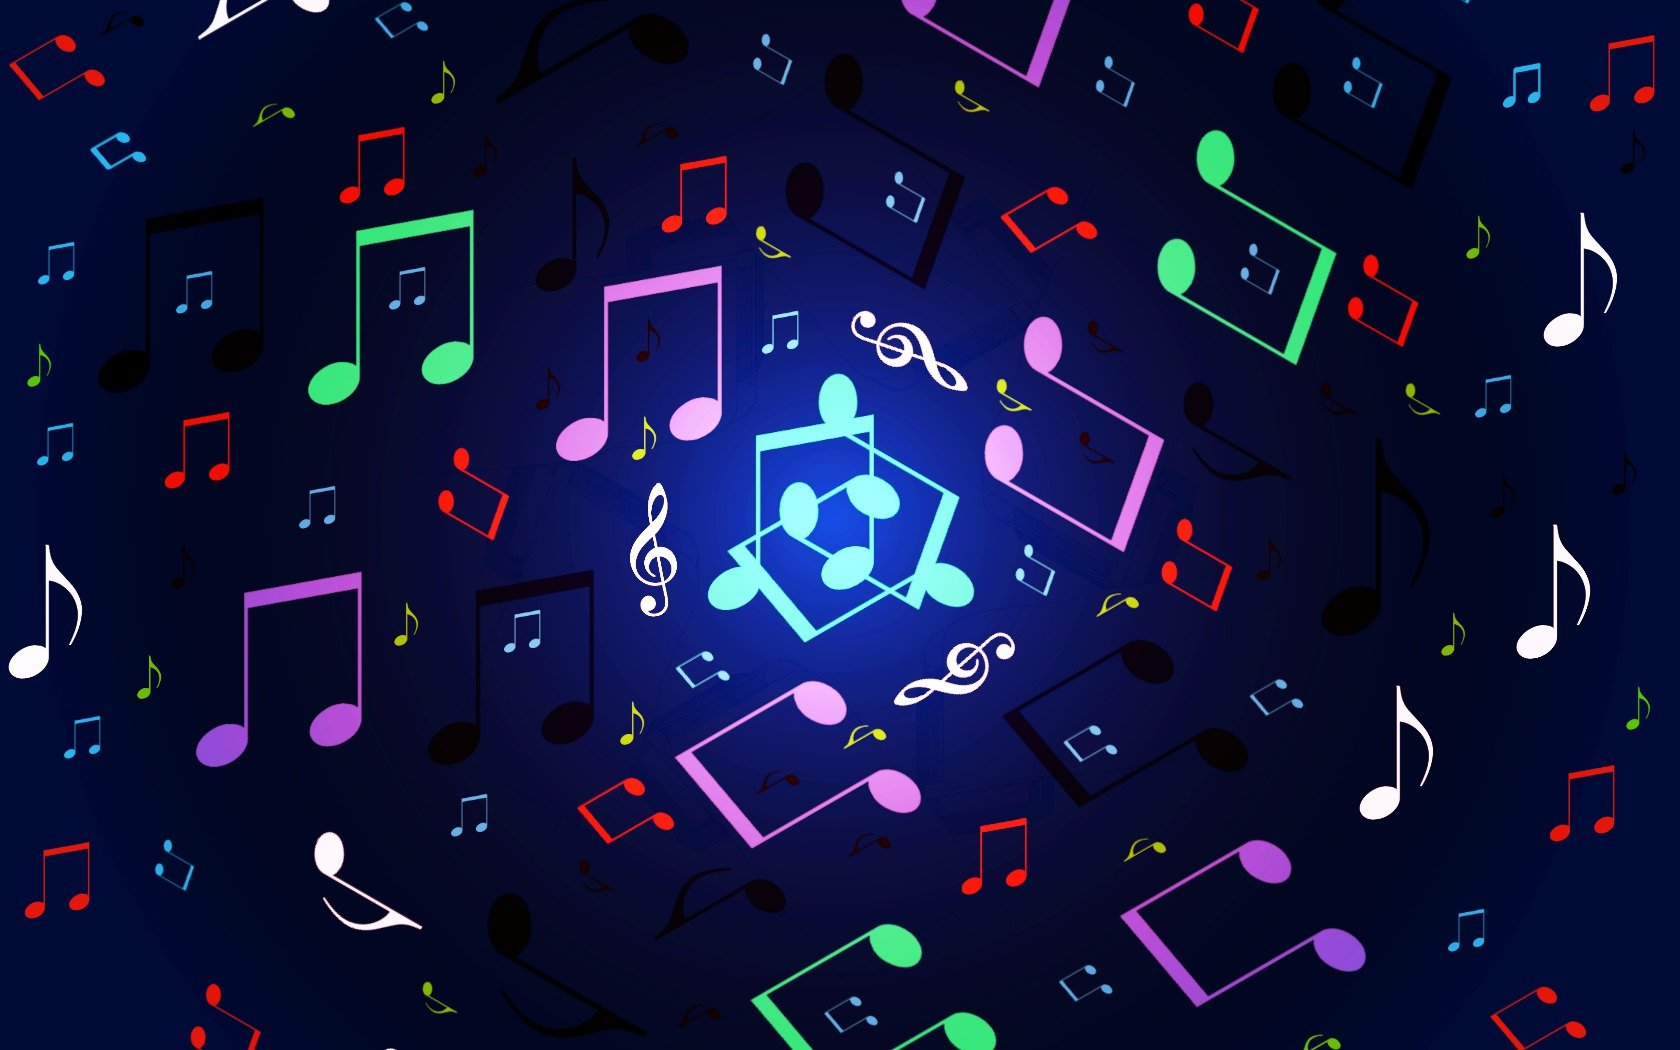 Rainbow Music Notes Background Hd Wallpaper Background Images: Music Note Wallpaper